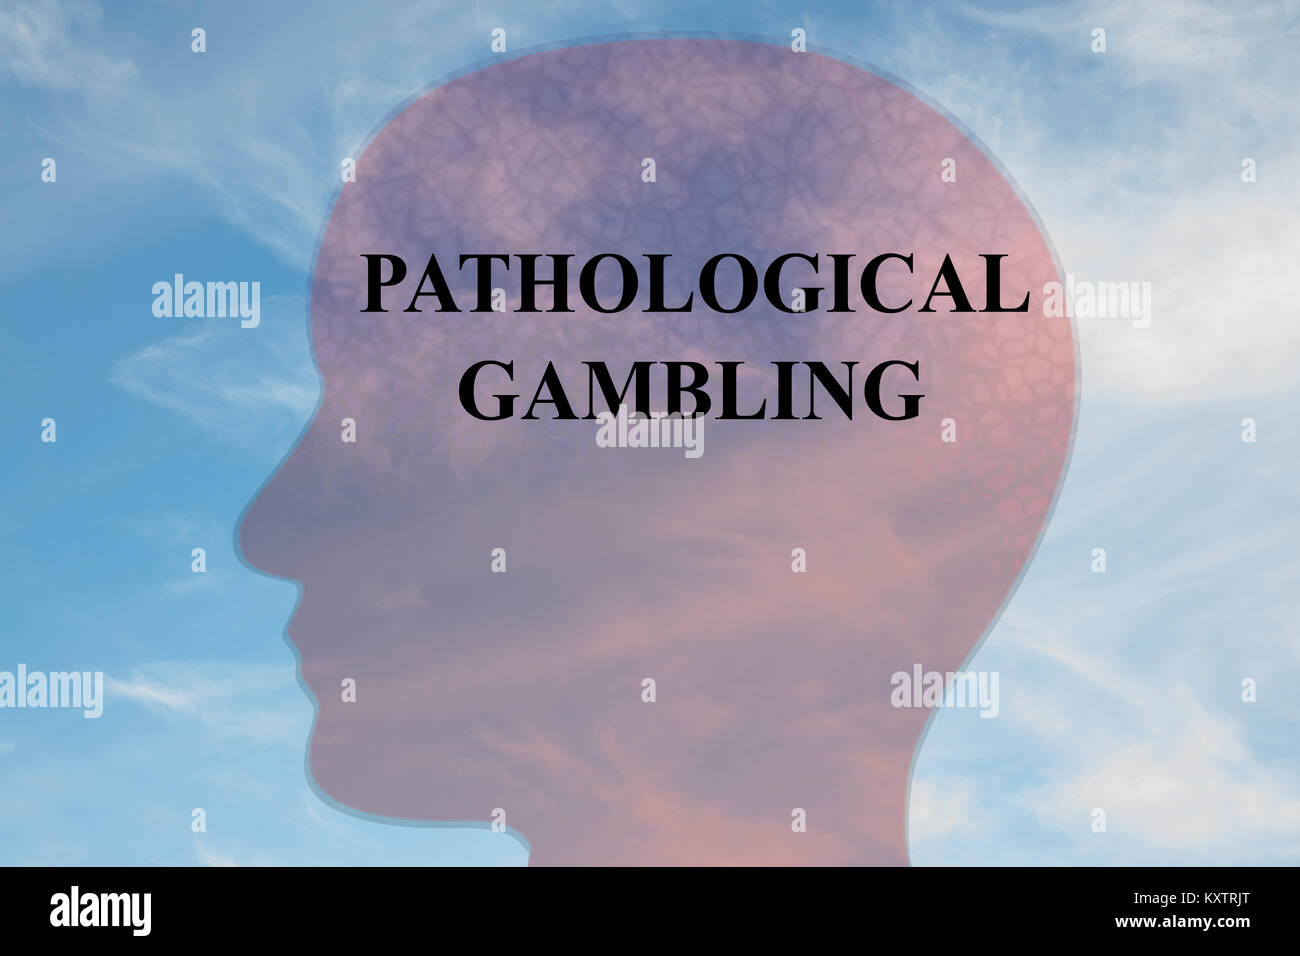 Render illustration of PATHOLOGICAL GAMBLING title on head silhouette, with cloudy sky as a background. - Stock Image